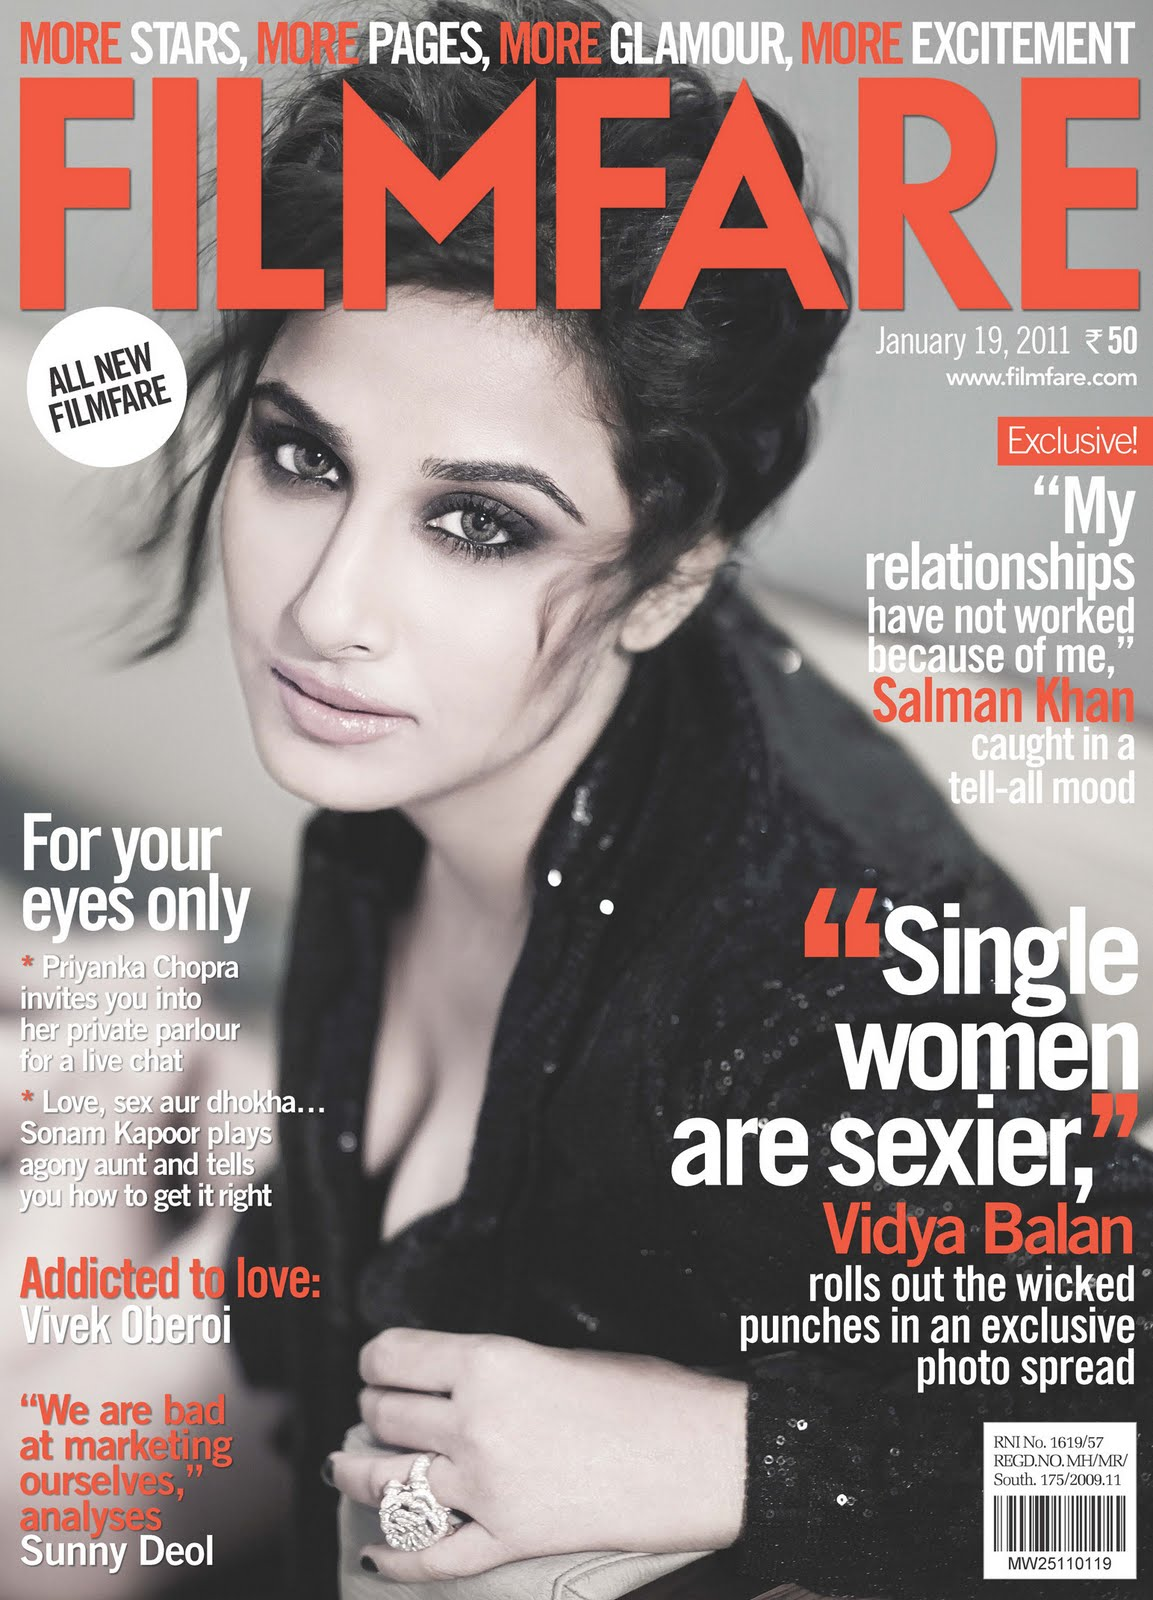 https://lh3.googleusercontent.com/-mEdiITr9Pv8/TXETa_reuEI/AAAAAAAAE00/HJ_TpimRxiY/s1600/vidya-balan-latest-photo-shoot-for-filmfare-hot-spicy-erotic-stills.jpg